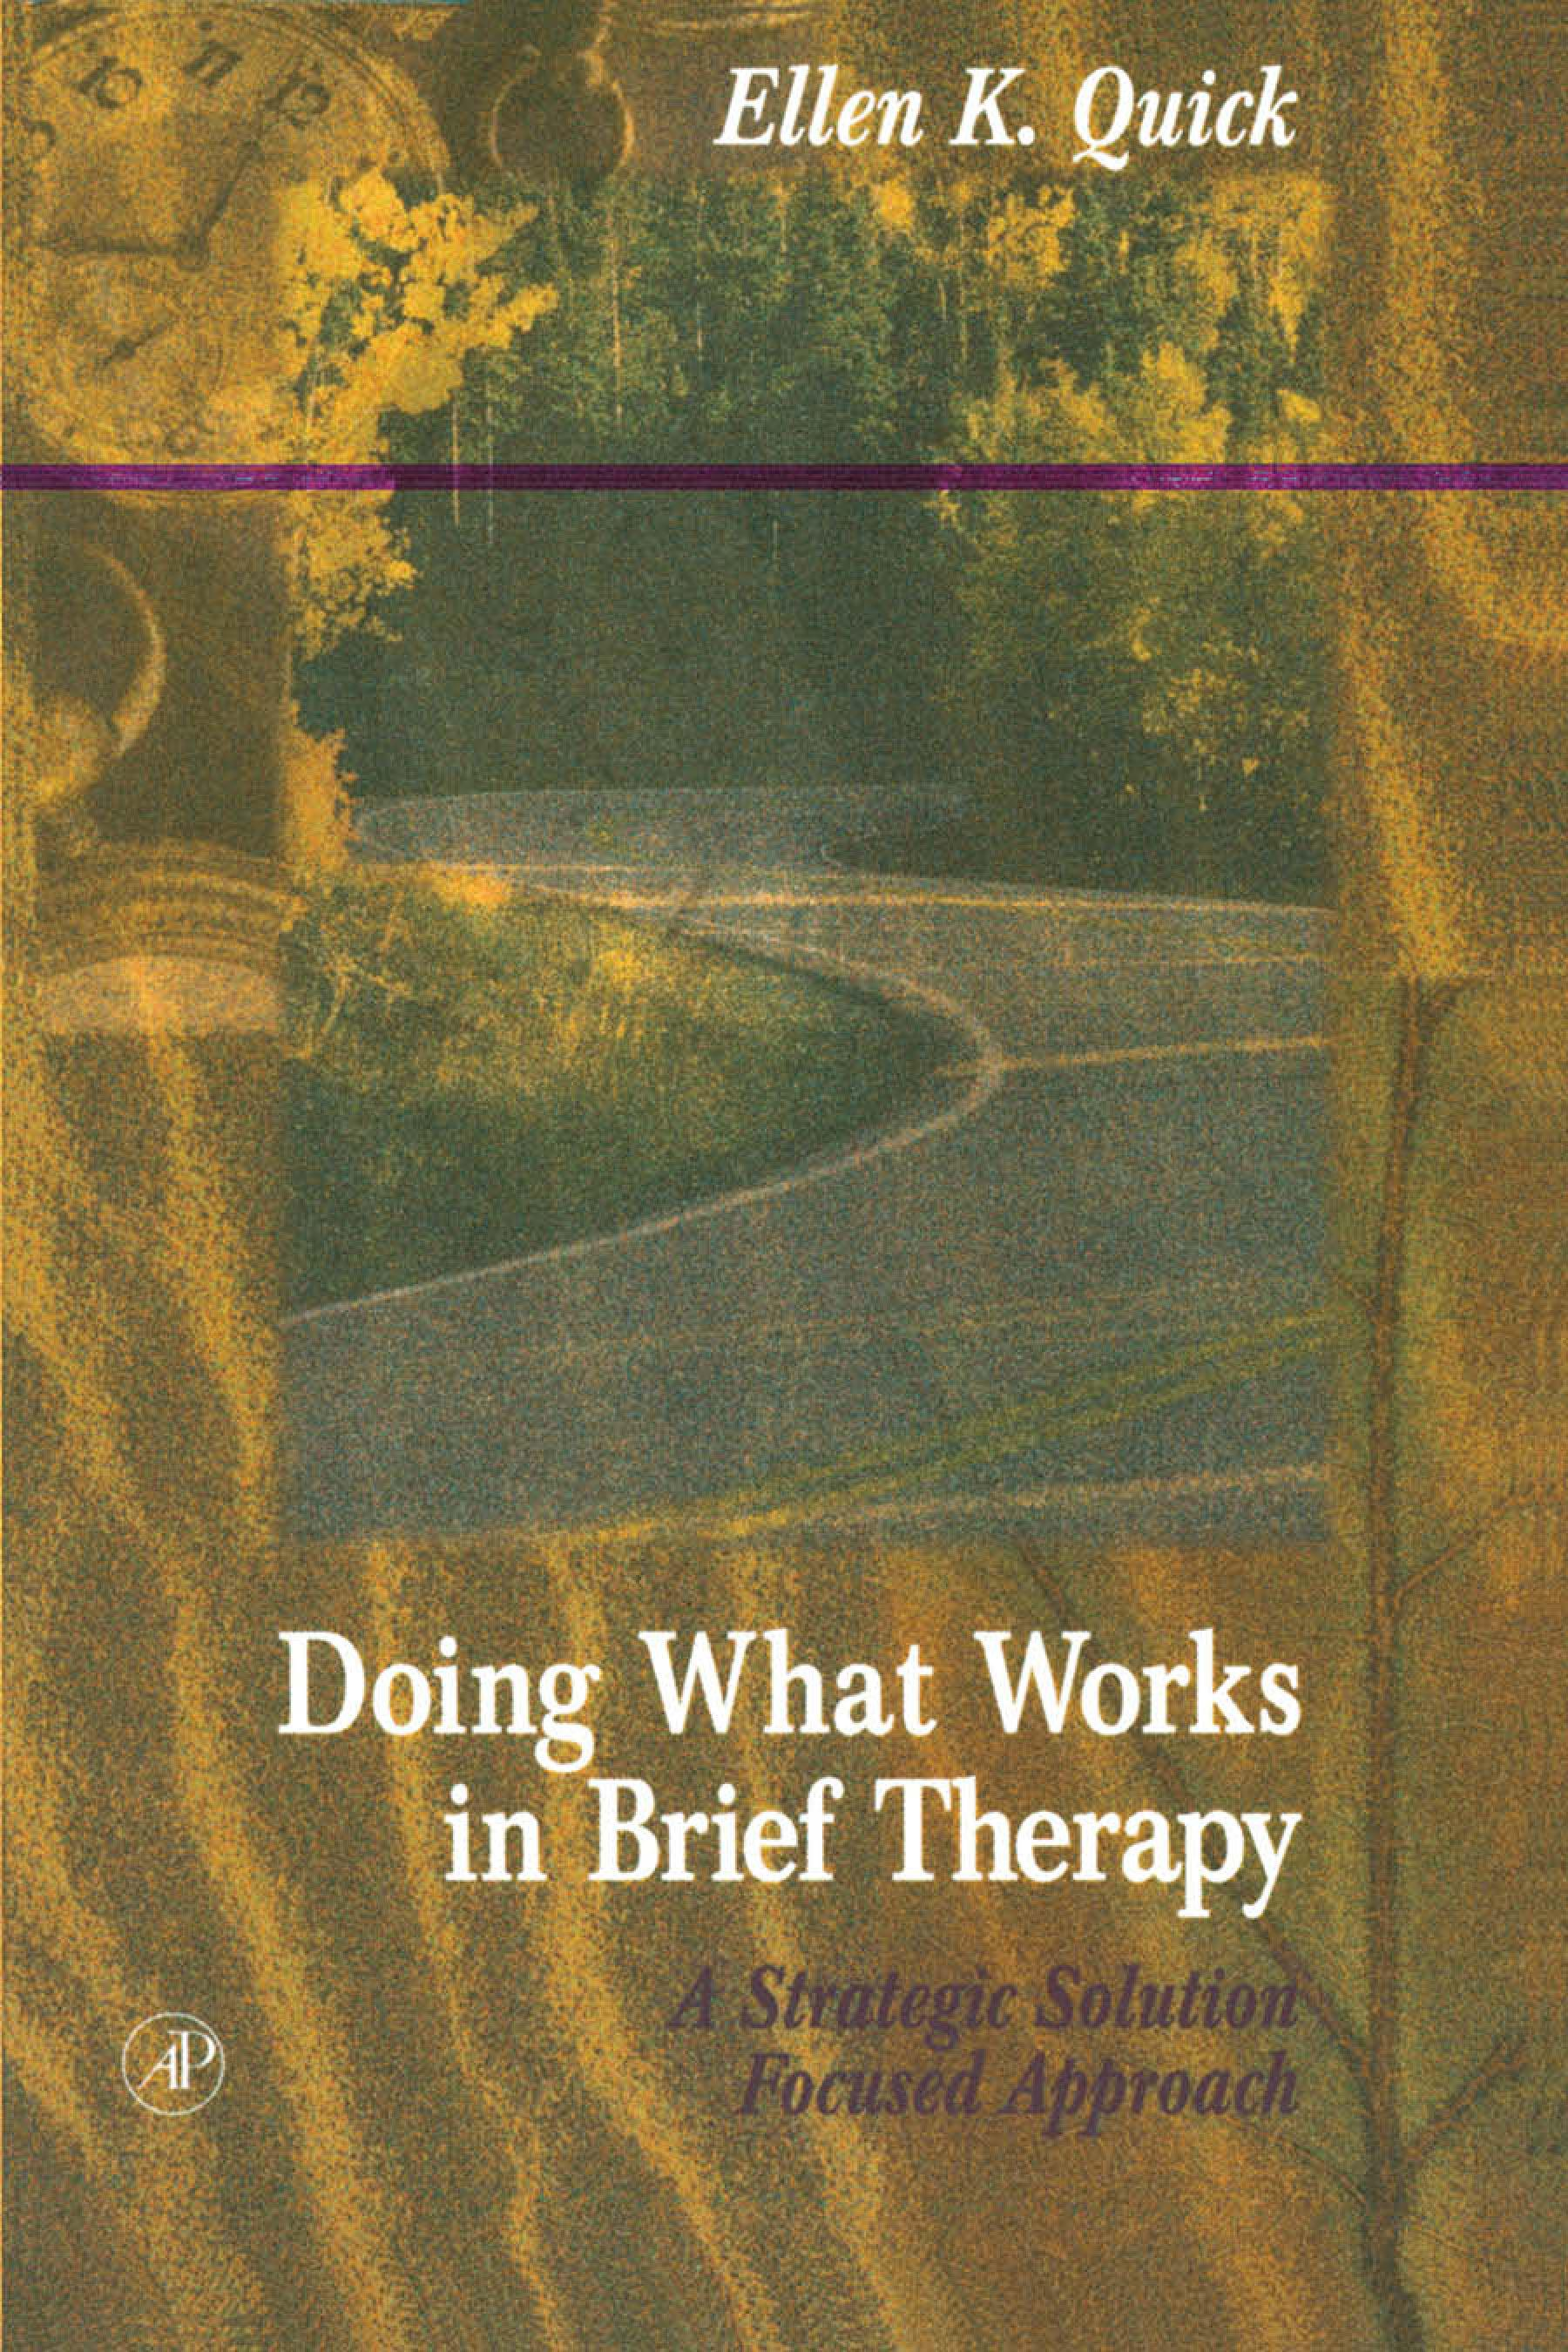 Doing What Works in Brief Therapy: A Strategic Solution Focused Approach EB9780080530499